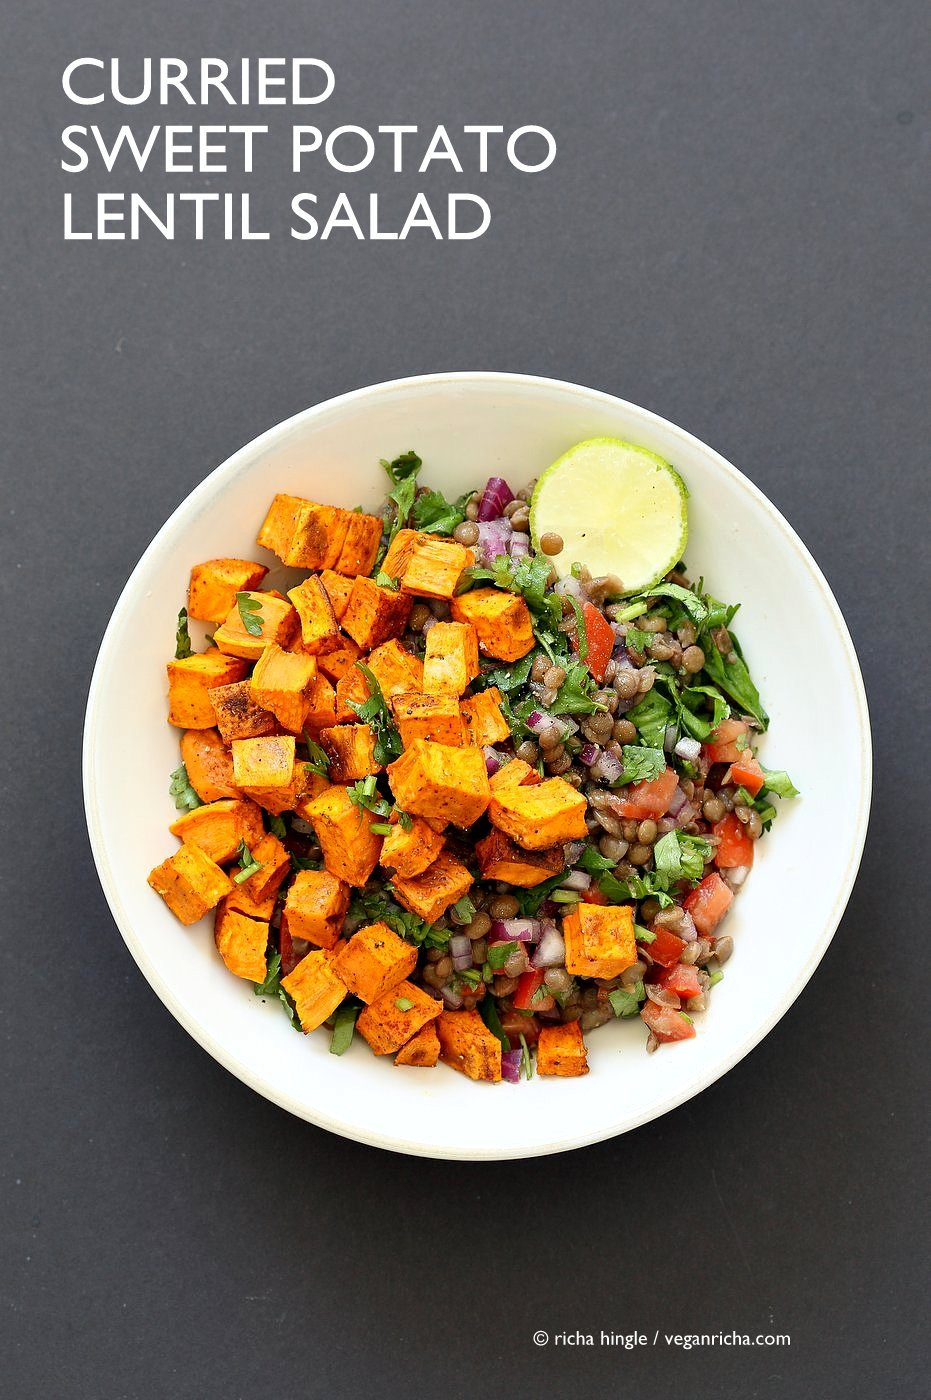 Curried Sweet Potato Lentil Salad Vegan Richa